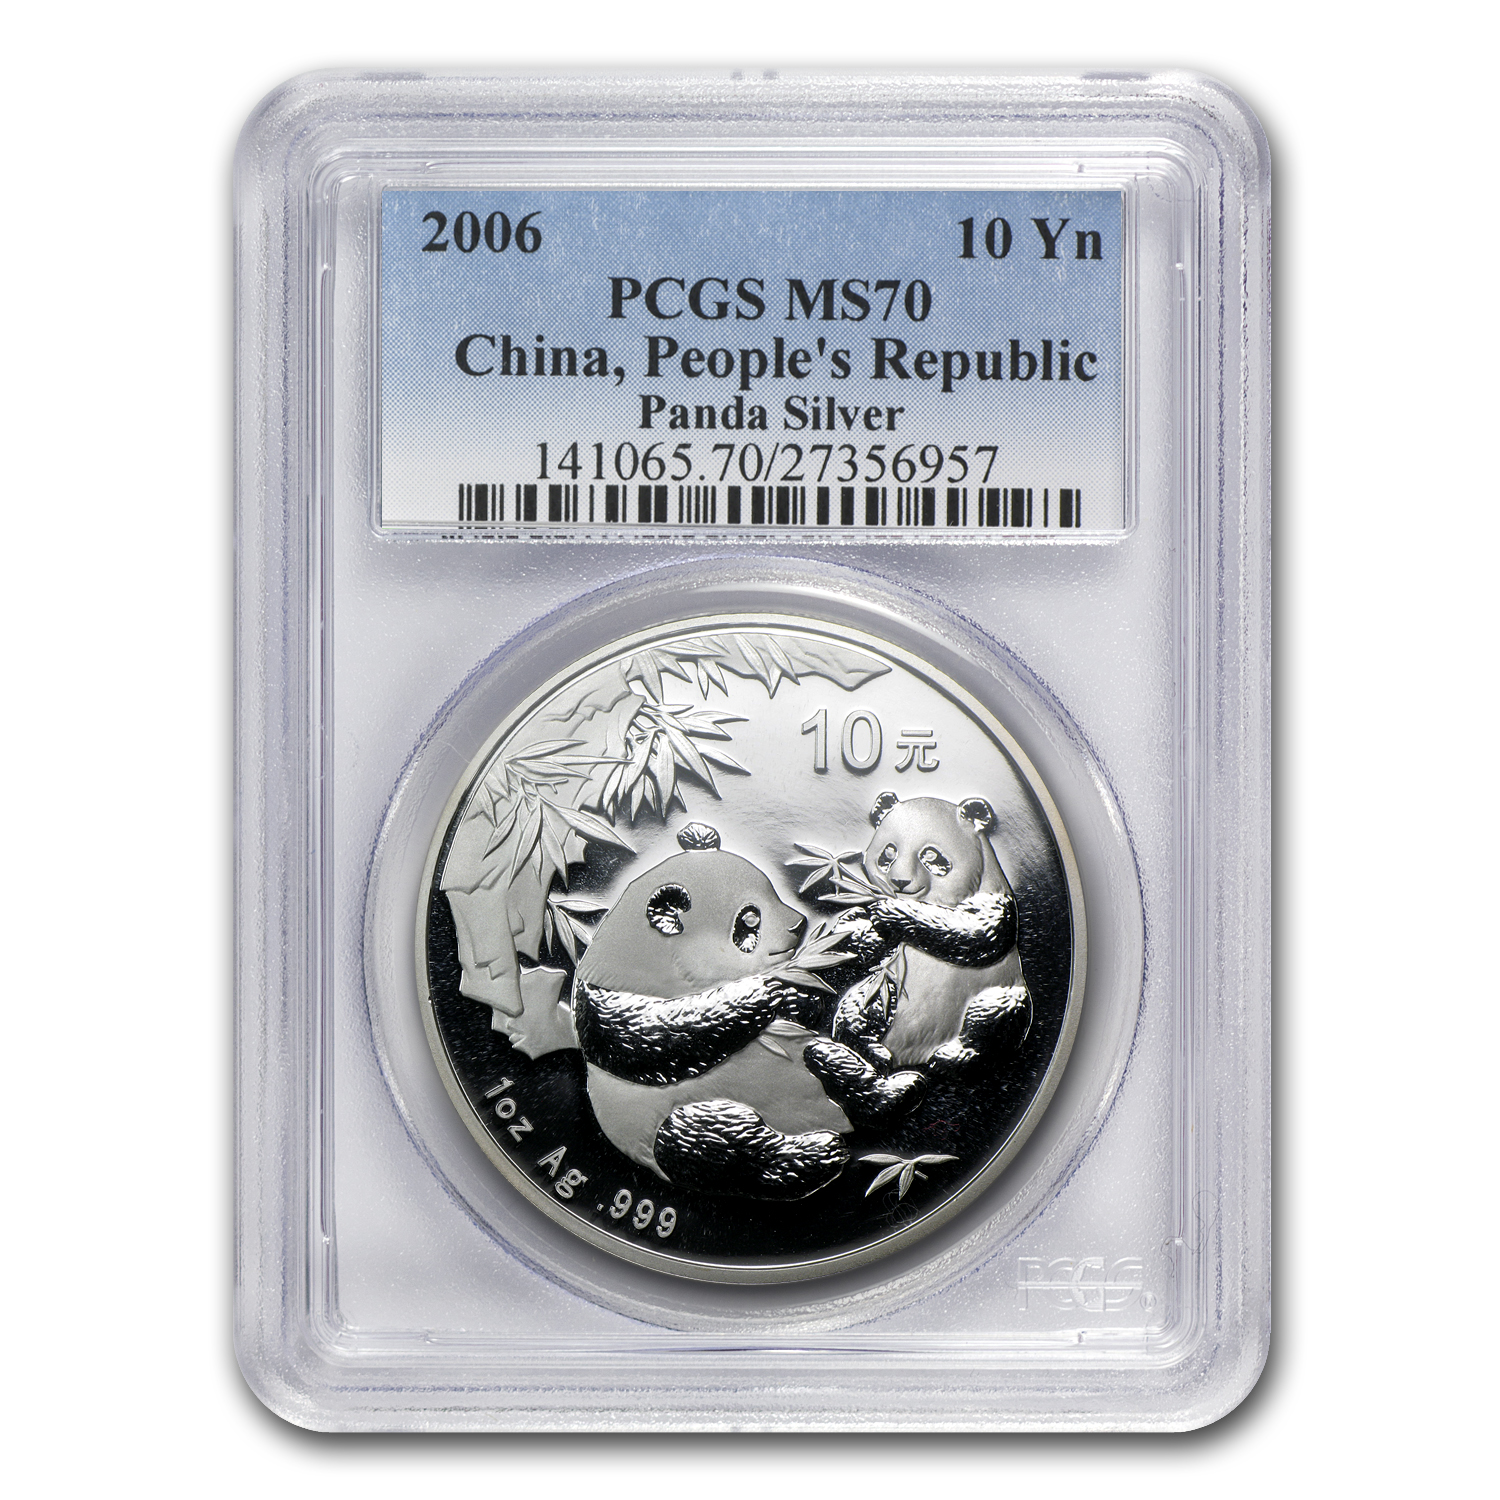 2006 China 1 oz Silver Panda MS-70 PCGS